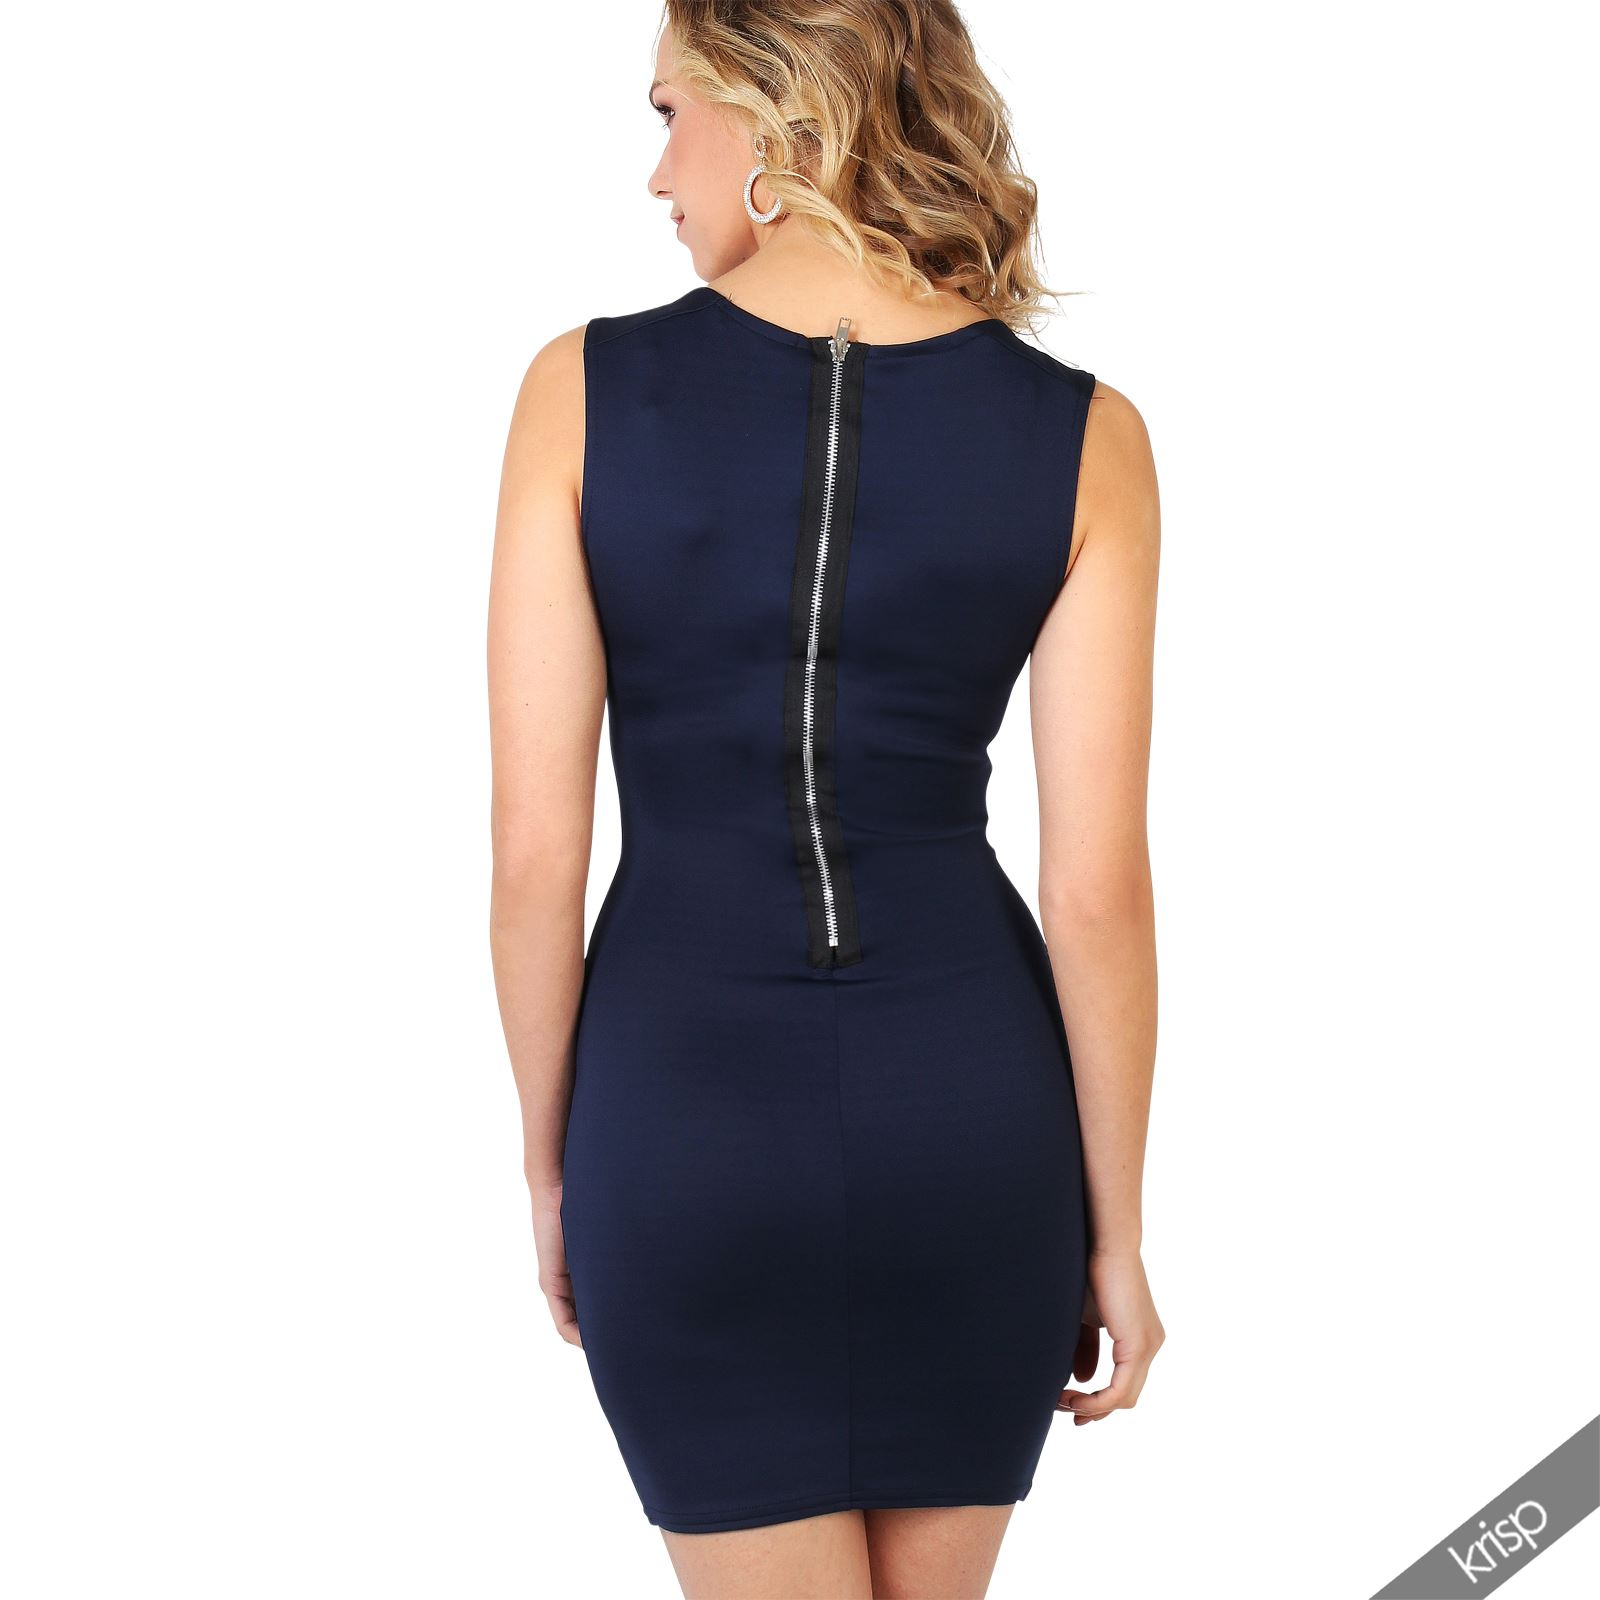 Ladies-Fashion-Bodycon-Dress-Sleeveless-Backless-Party-Fitted-Cocktail-Pencil thumbnail 10